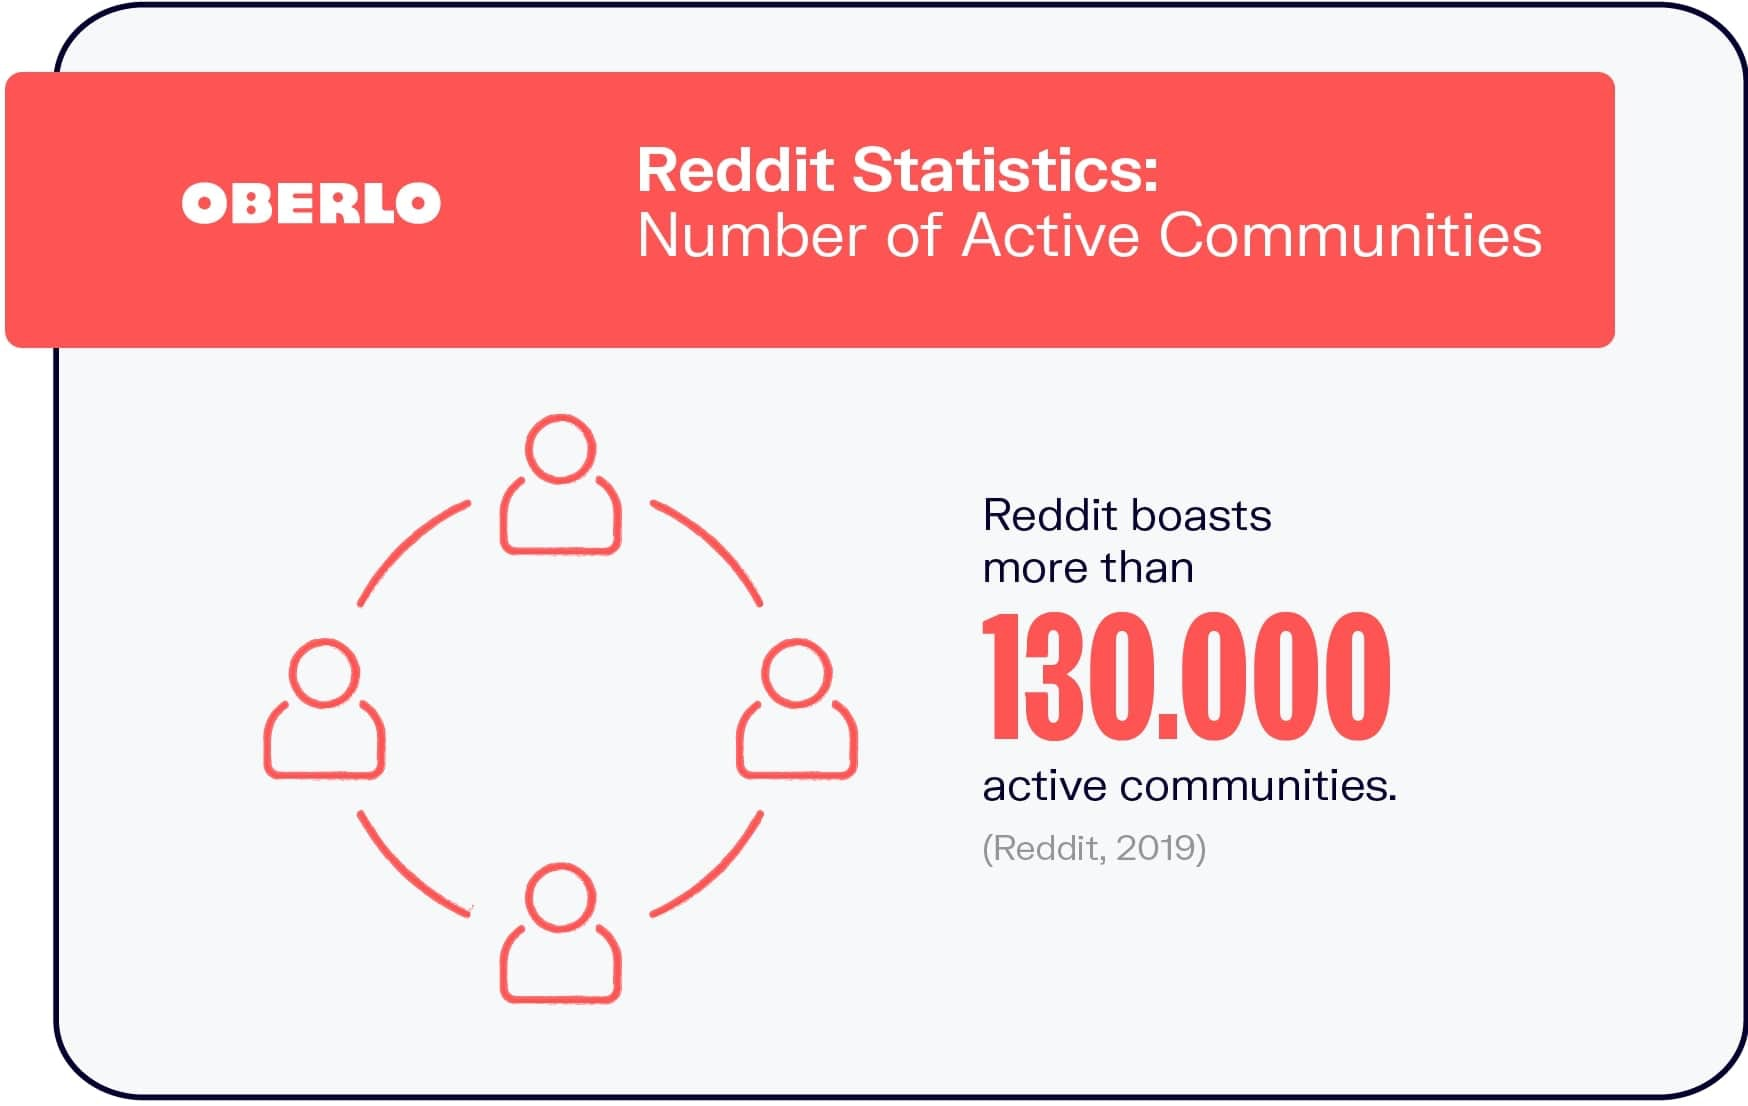 Reddit Statistics: Number of Active Communities